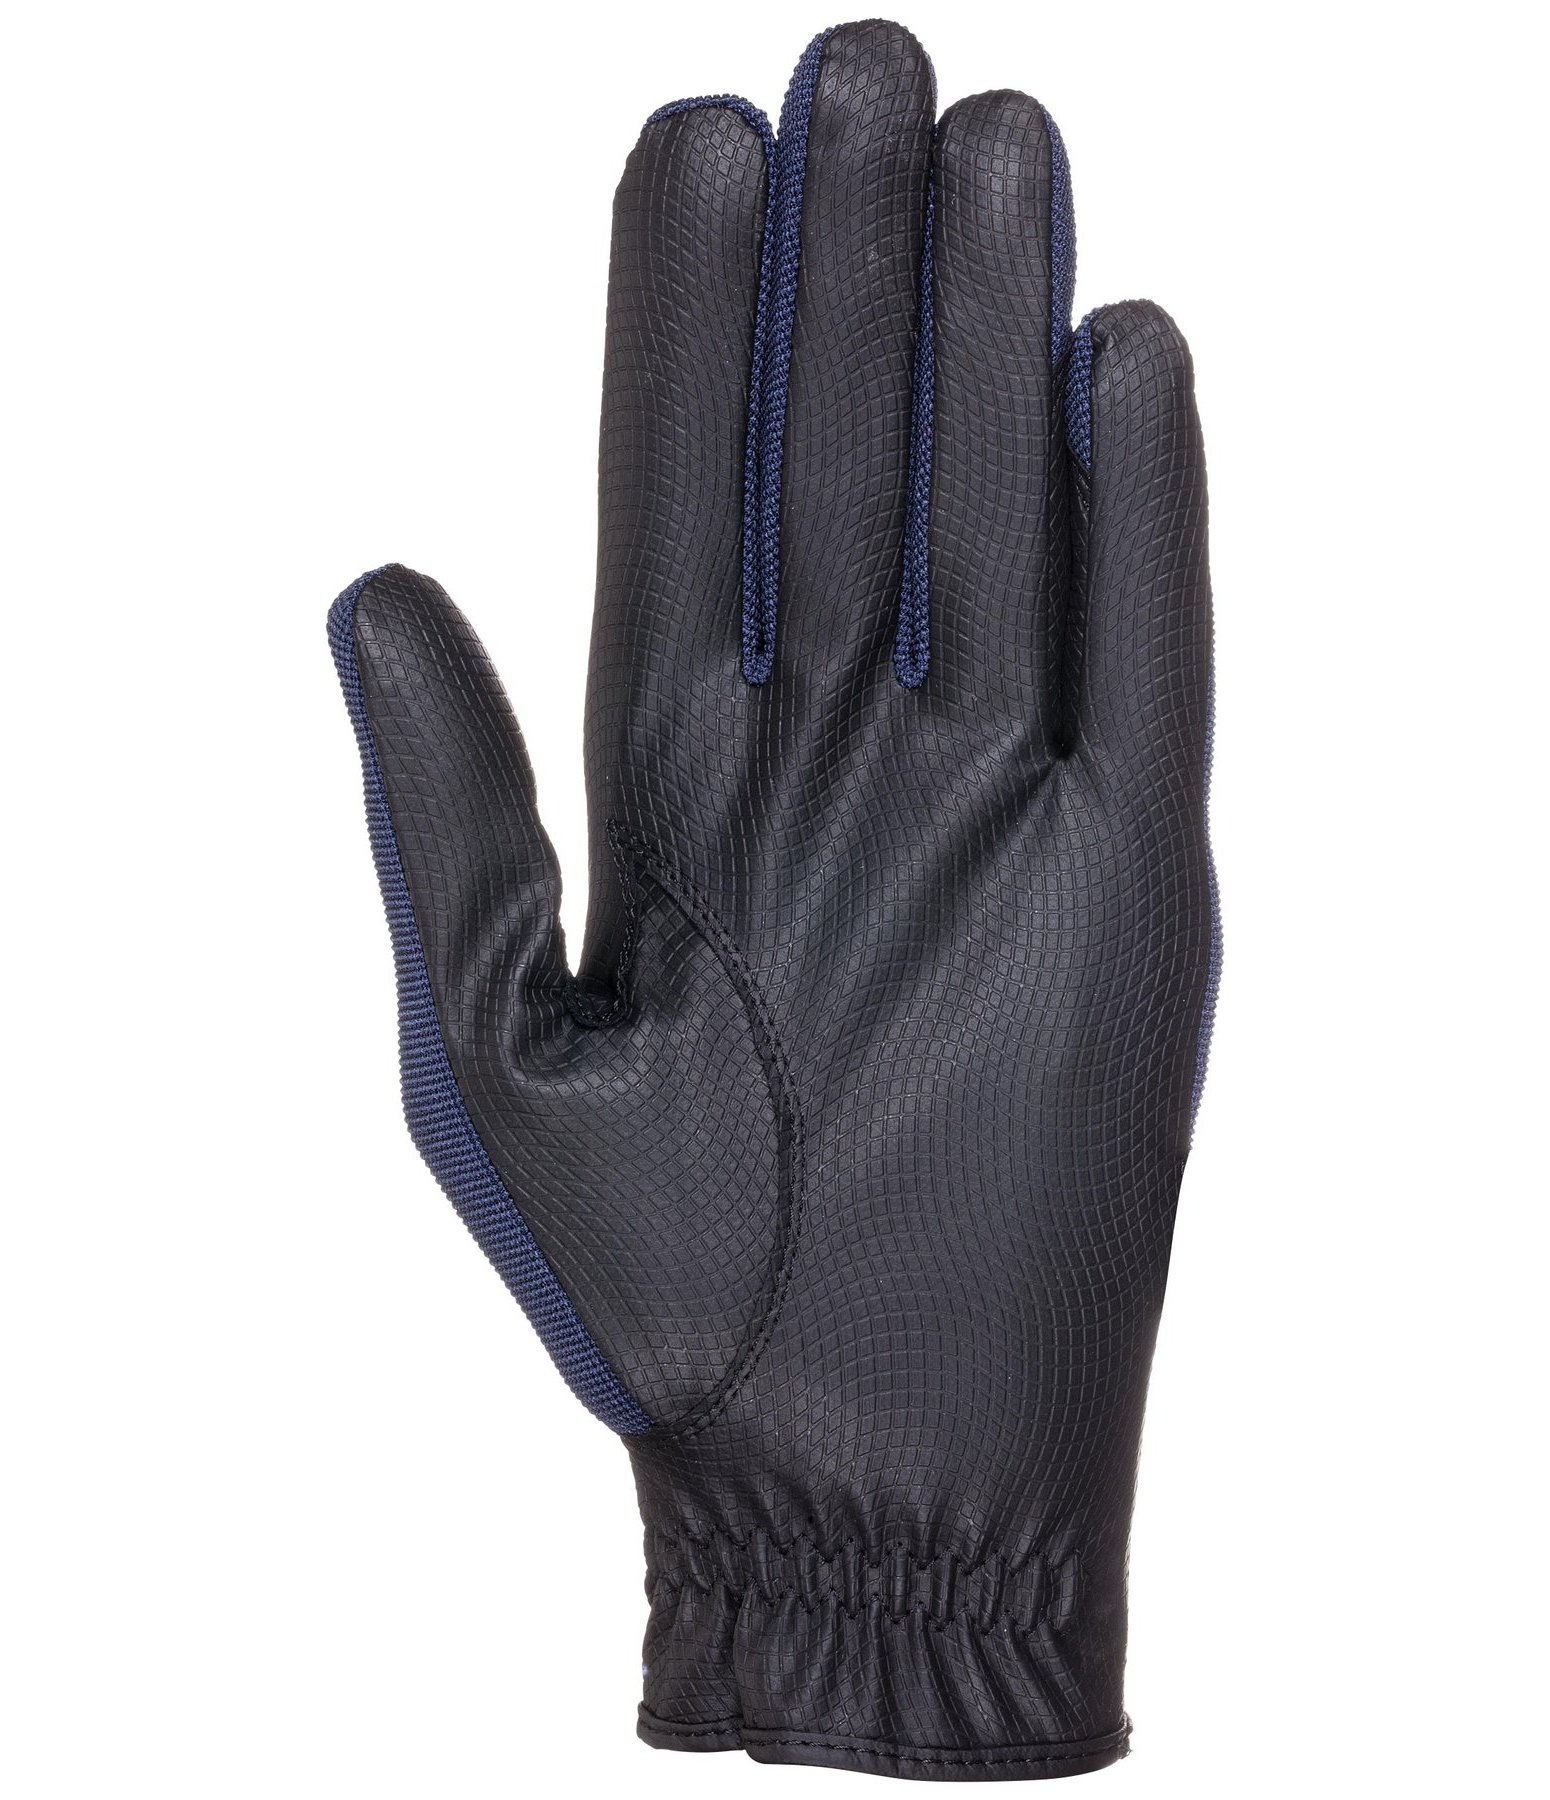 Riding Gloves Madison - All Seasons Riding Gloves